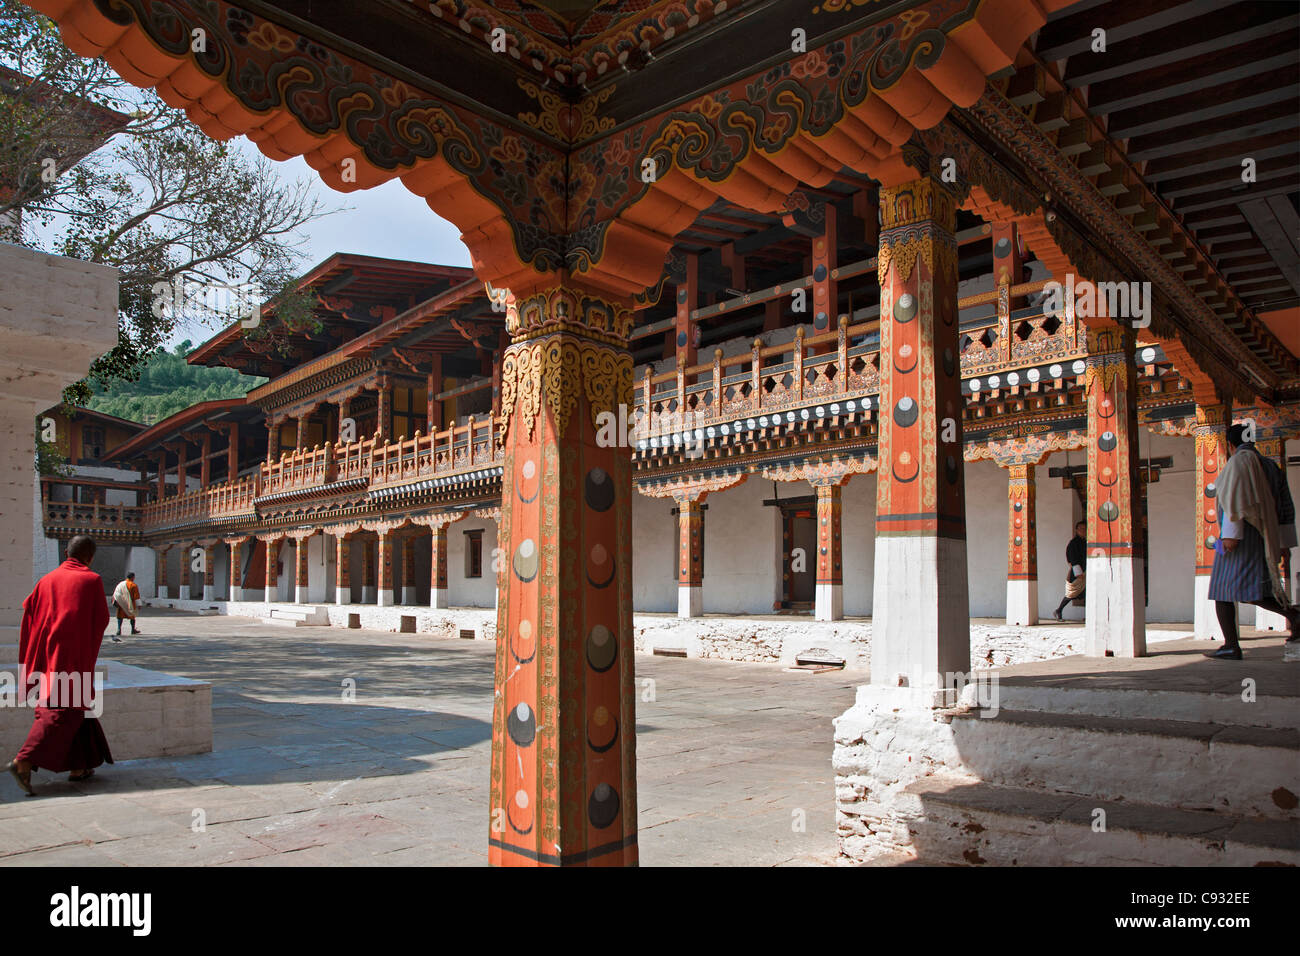 Magnificent old buildings enclose a courtyard in the Punakha Dzong, is the second oldest and largest dzong in Bhutan. - Stock Image